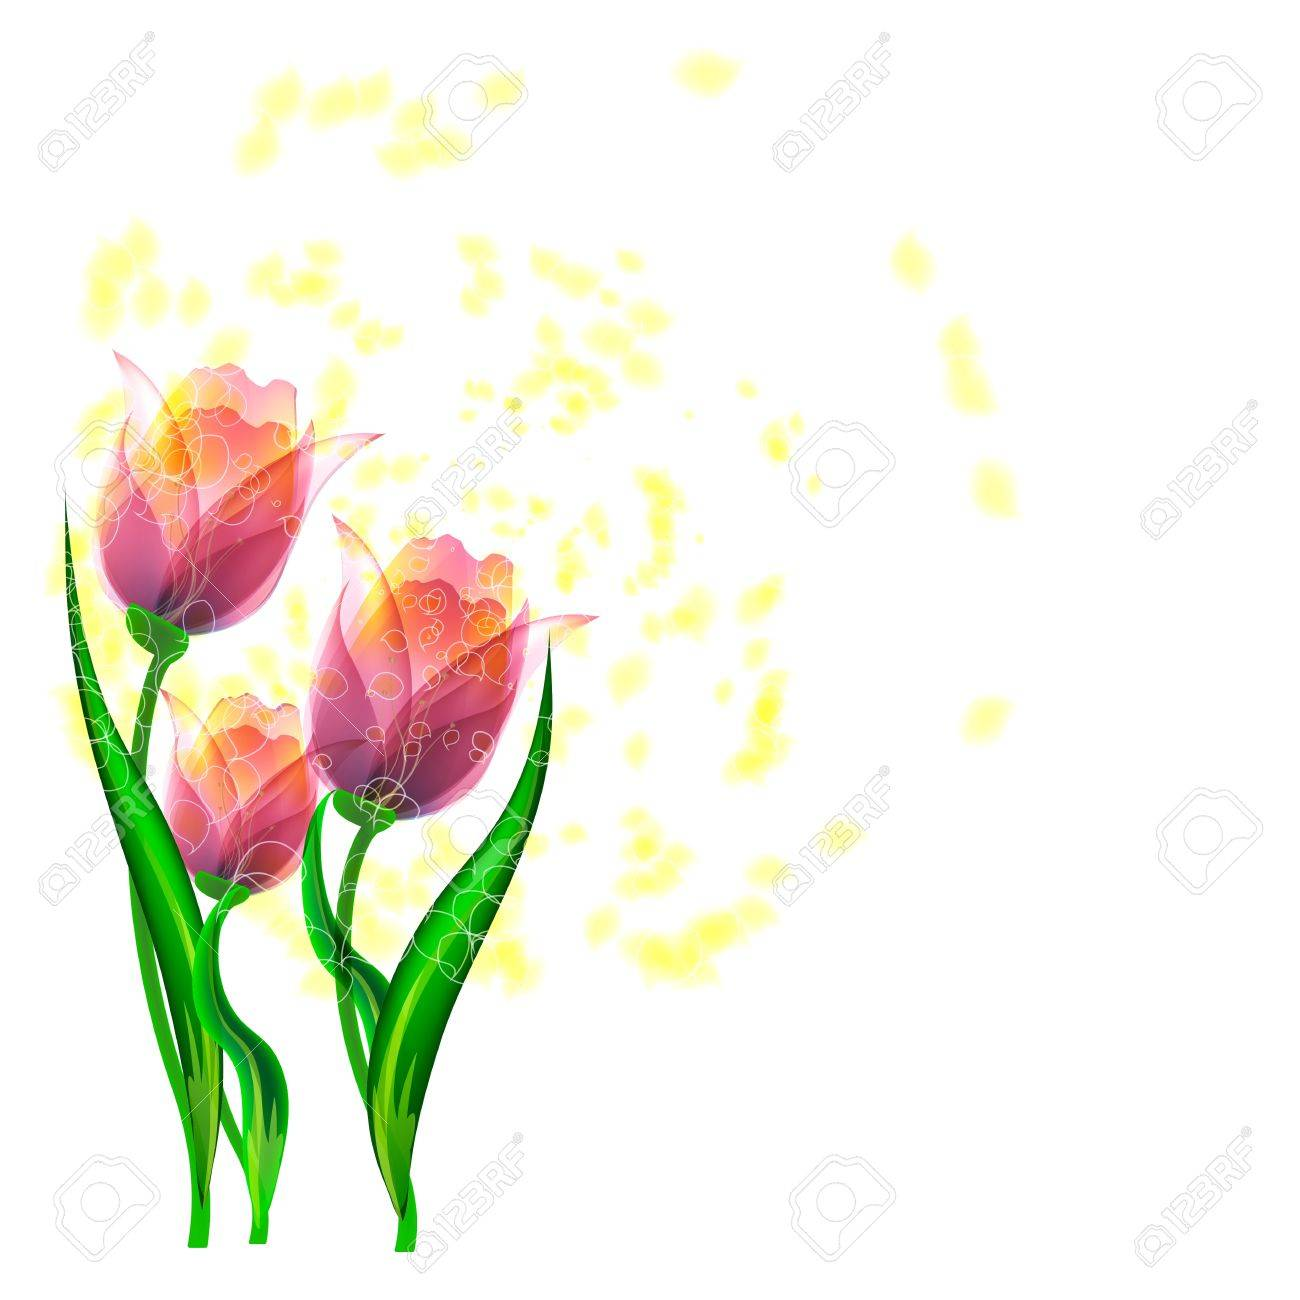 Flowers bright a background are more transparent Stock Vector - 15756292